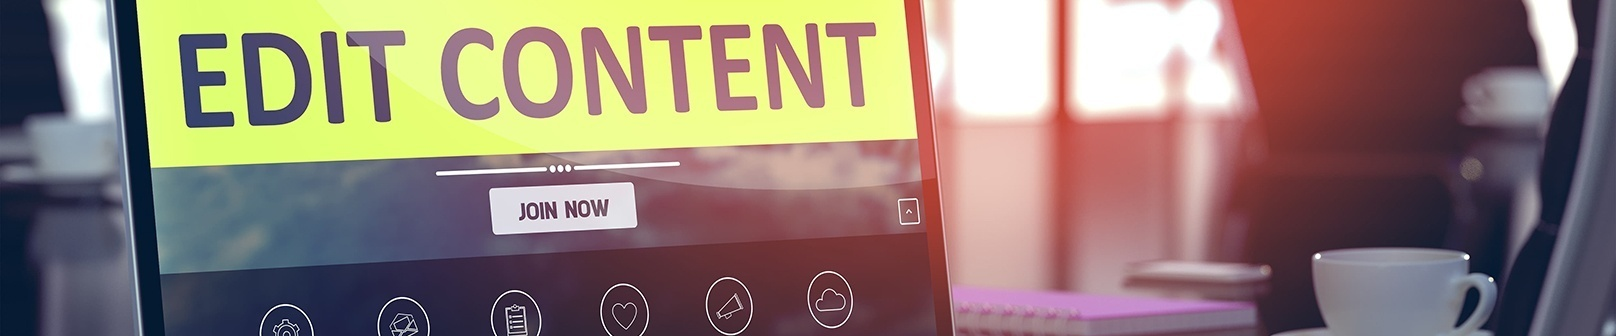 5_ways_to_improve_your_content_marketing_1_copy.jpg